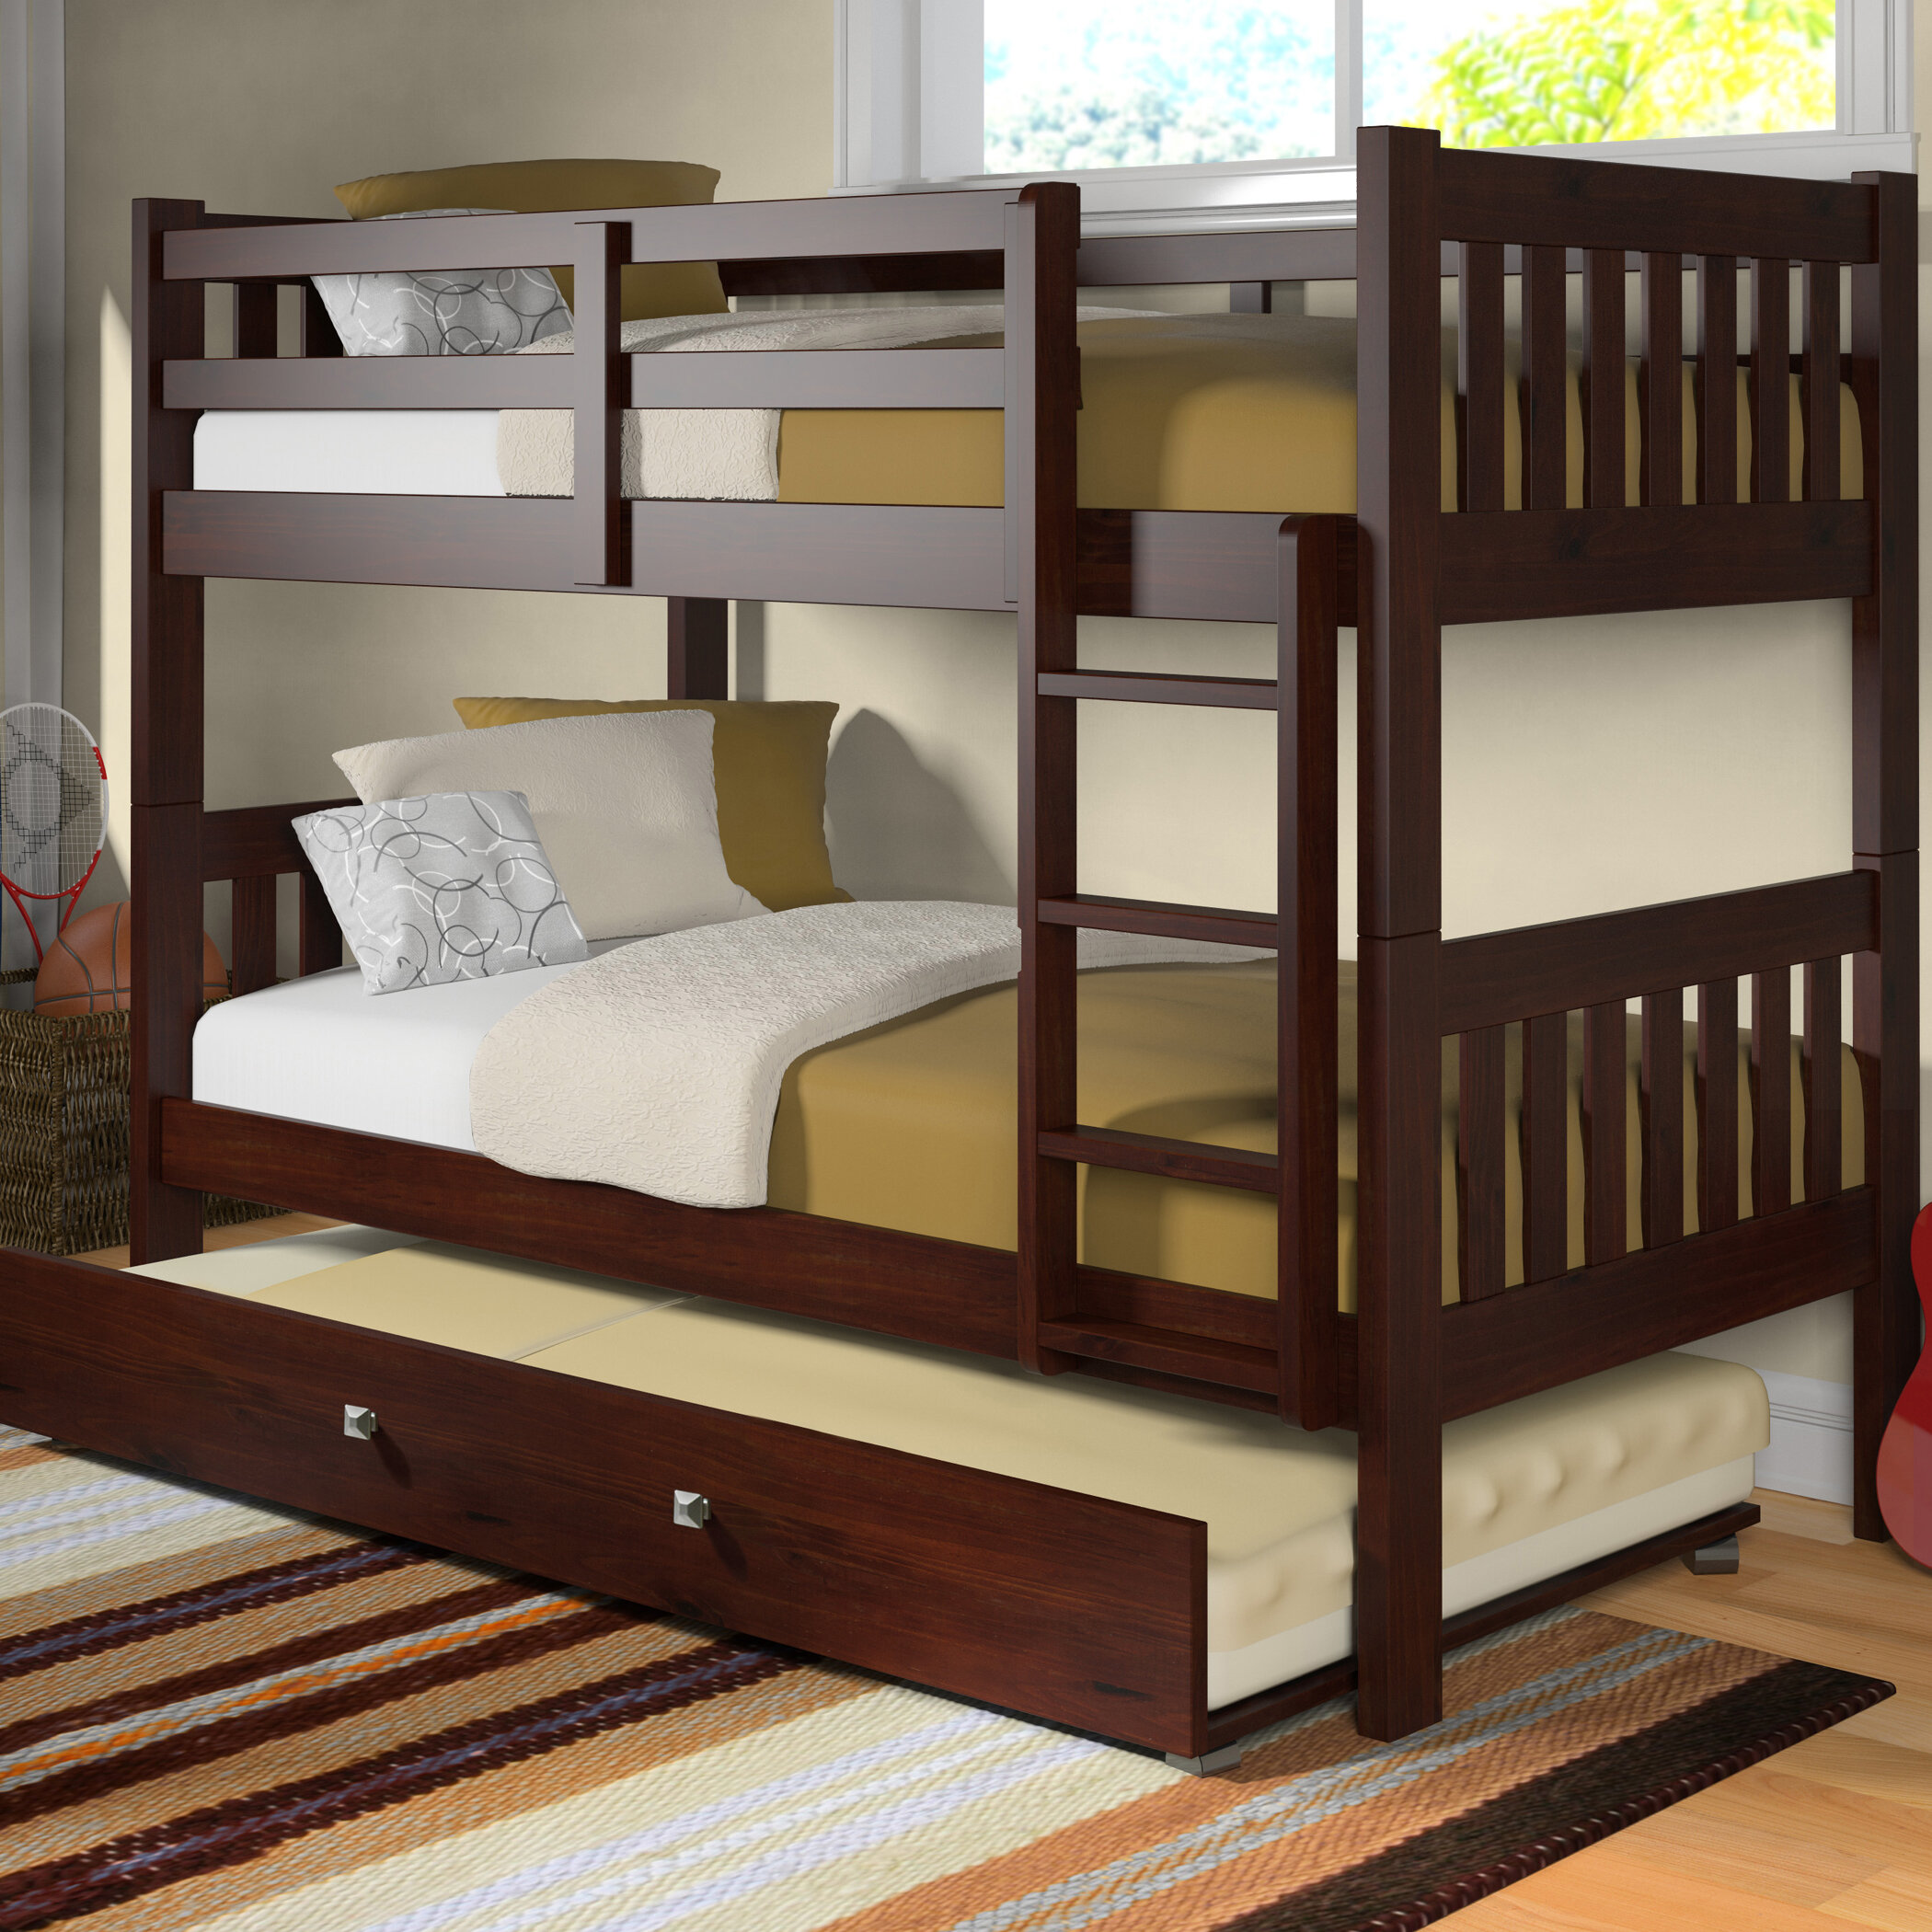 Beautiful Bunk Beds that Come Apart